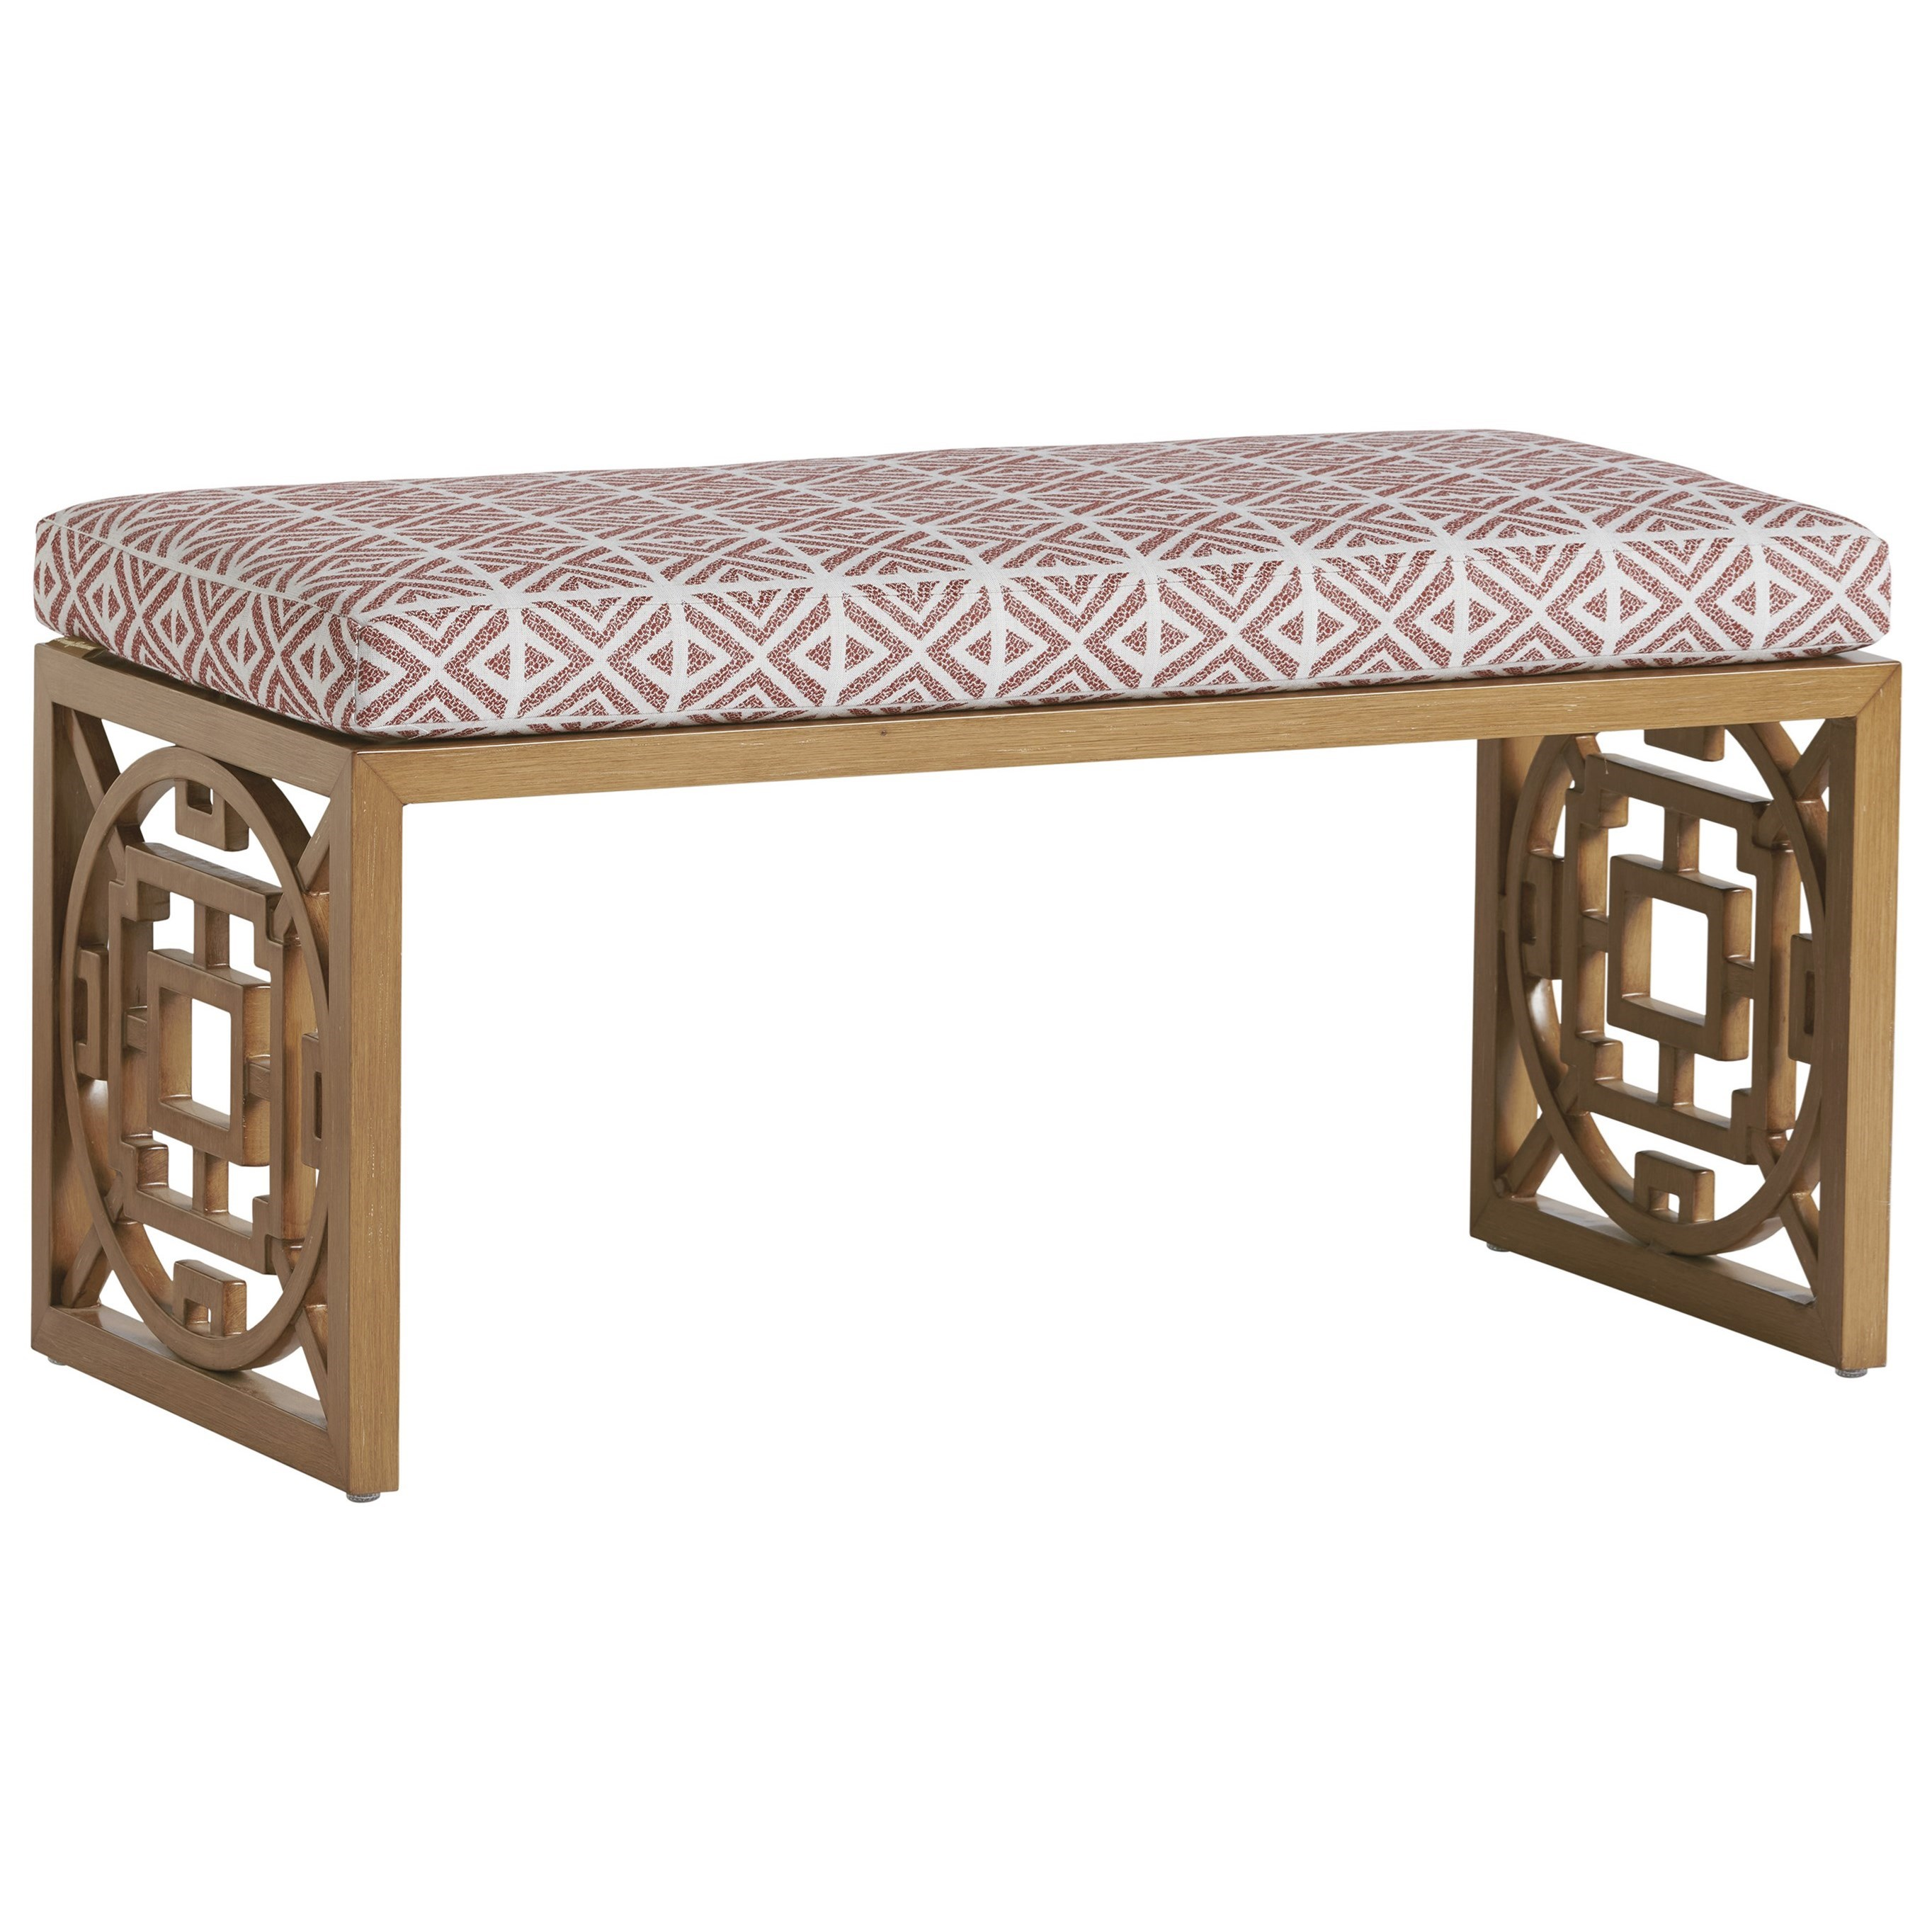 Los Altos Valley View Bench by Tommy Bahama Outdoor Living at Baer's Furniture